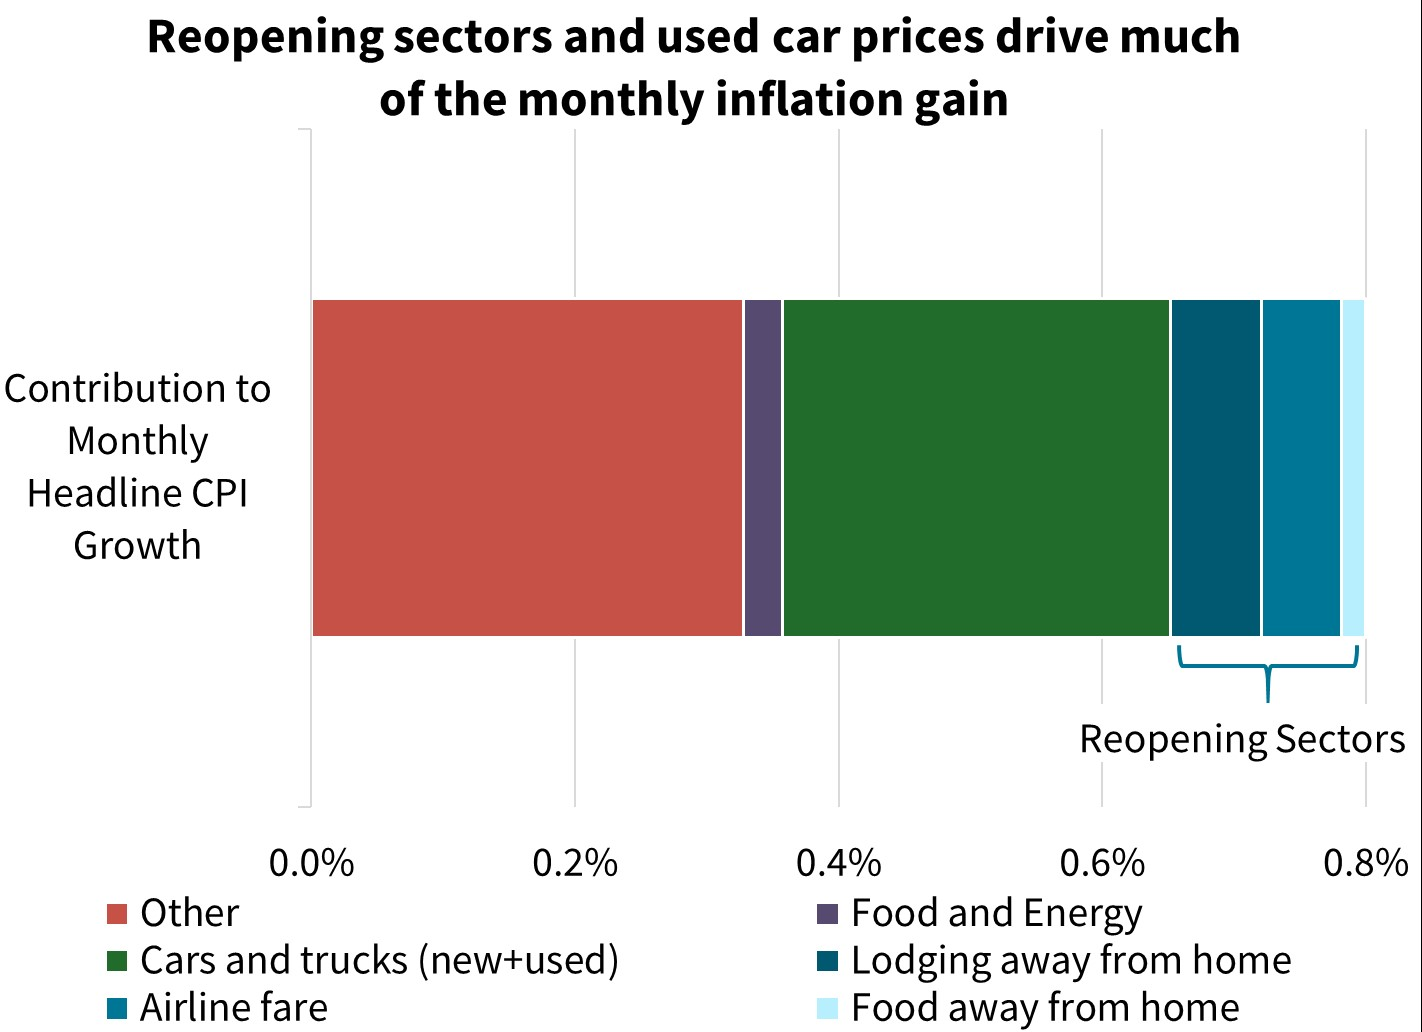 Reopening sectors and used car prices drive much of the monthly inflation gain